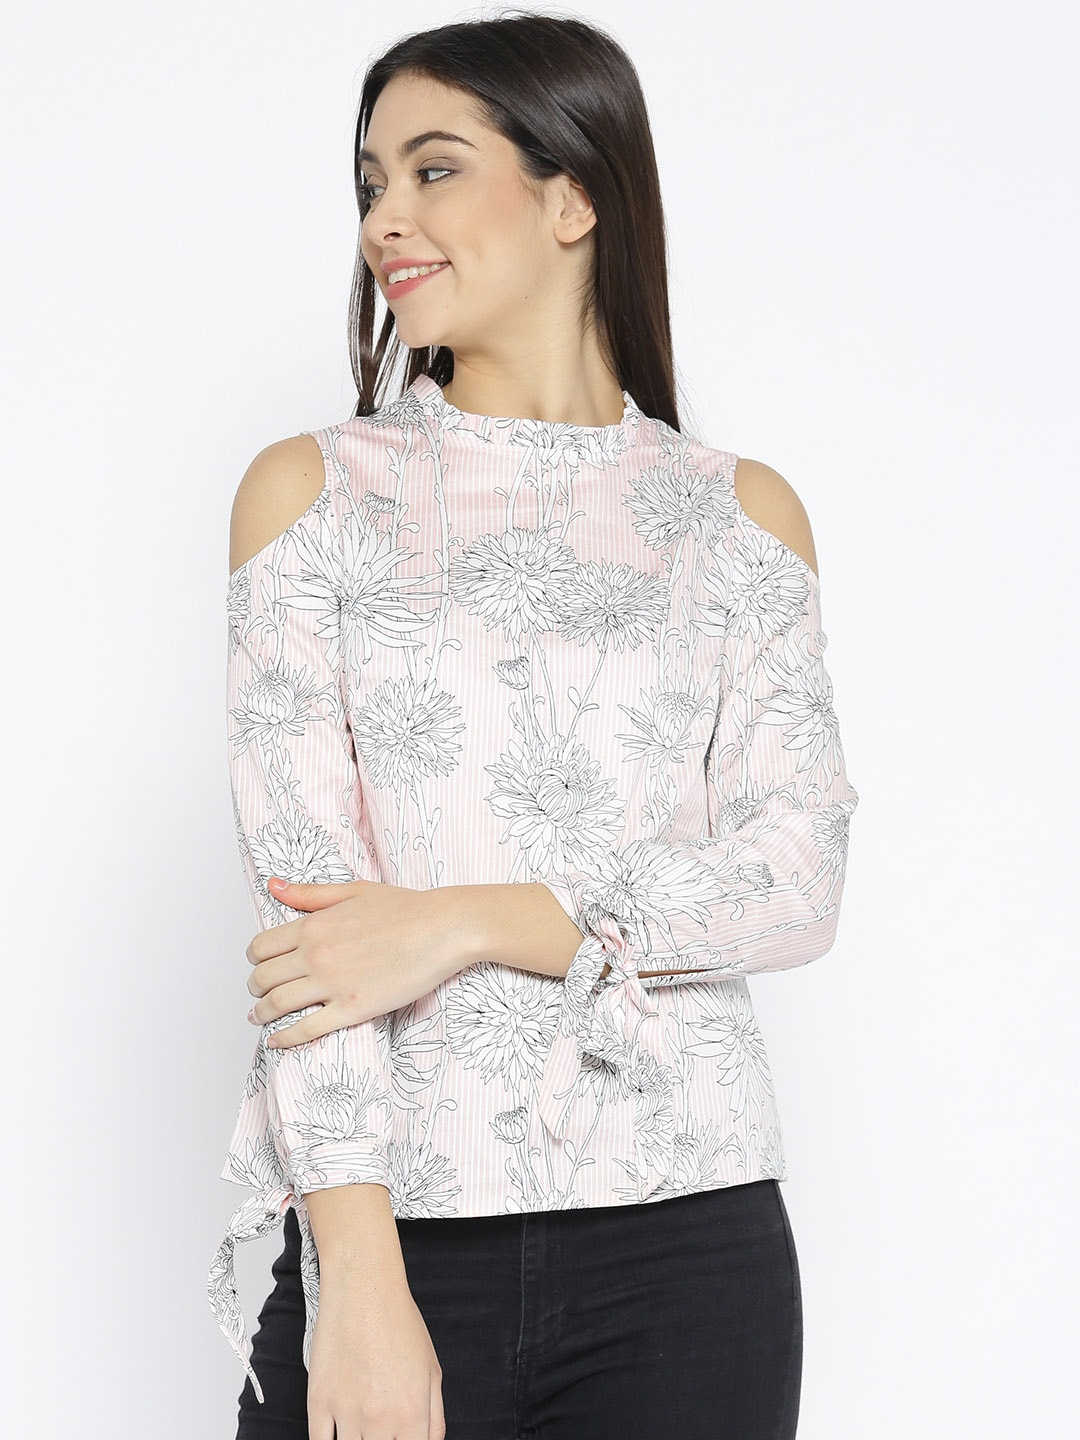 ff19f80c94f Ladies Tops - Buy Tops & T-shirts for Women Online | Myntra